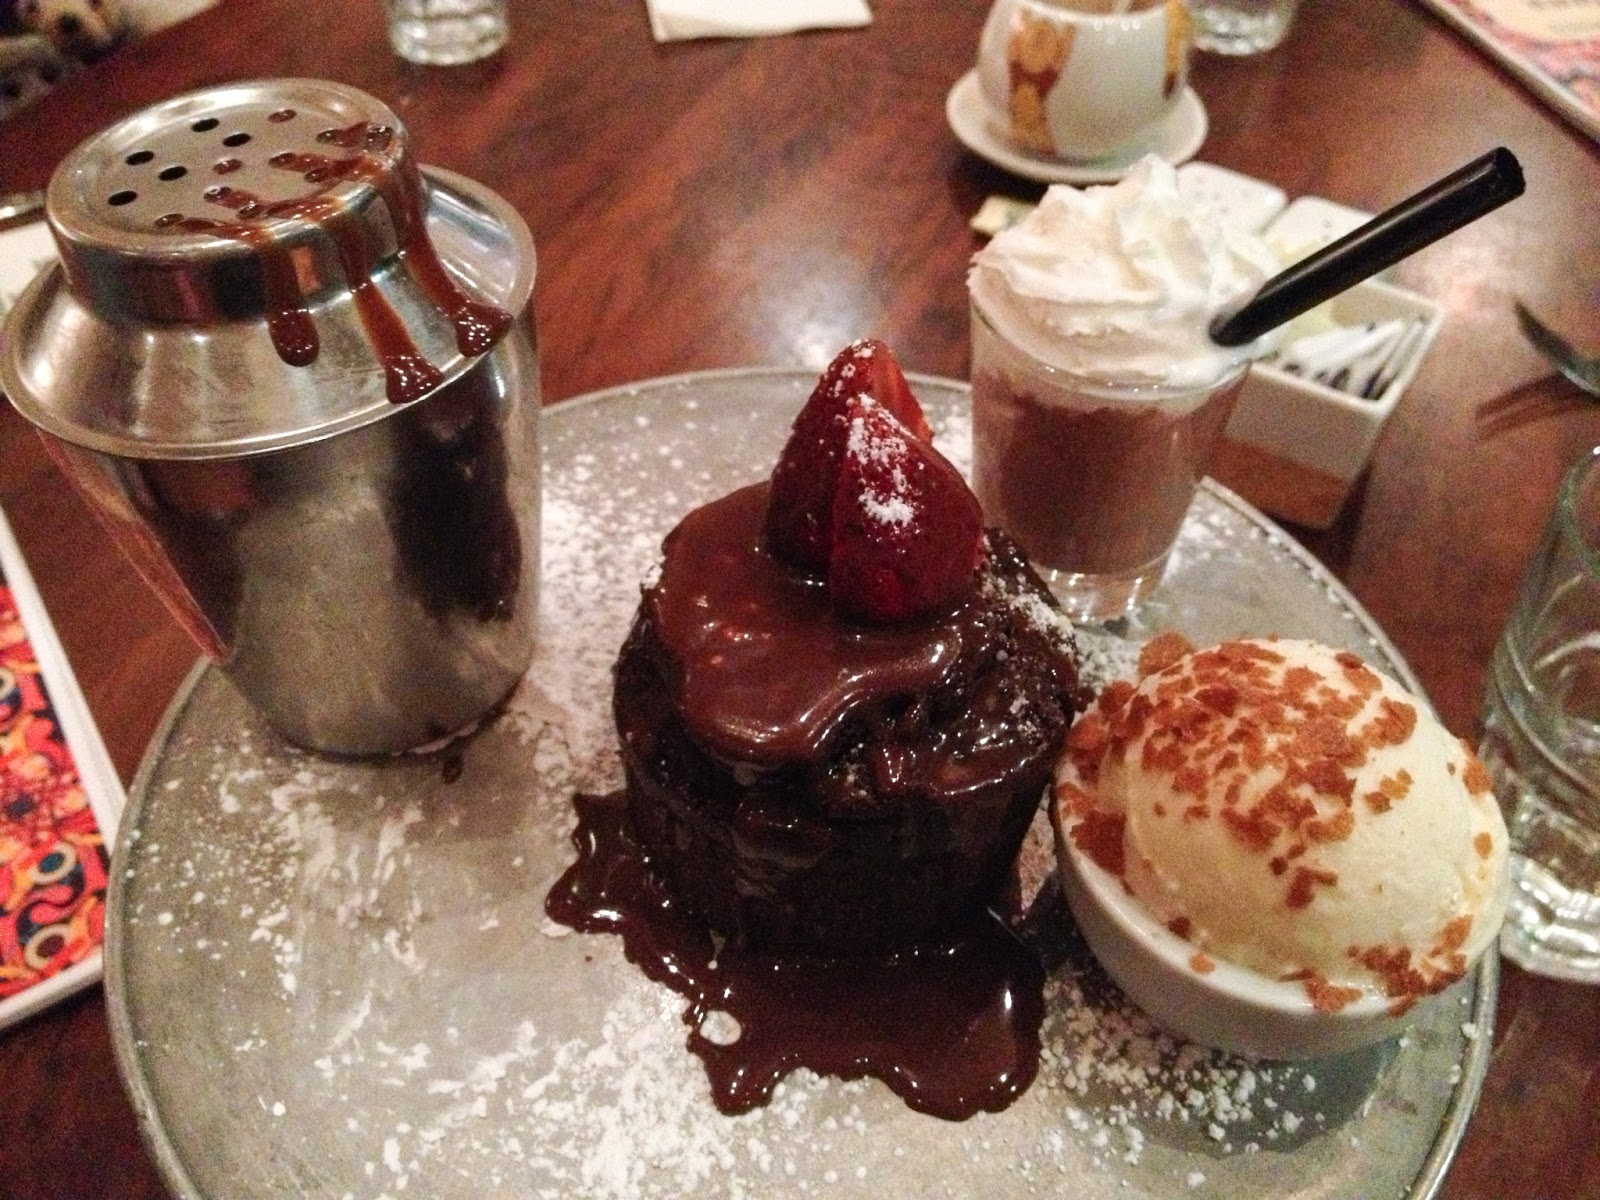 max brenner, chocolate by the bald man, lava cake, chocolate heart truffle cake, max brenner shake, chocolate spread